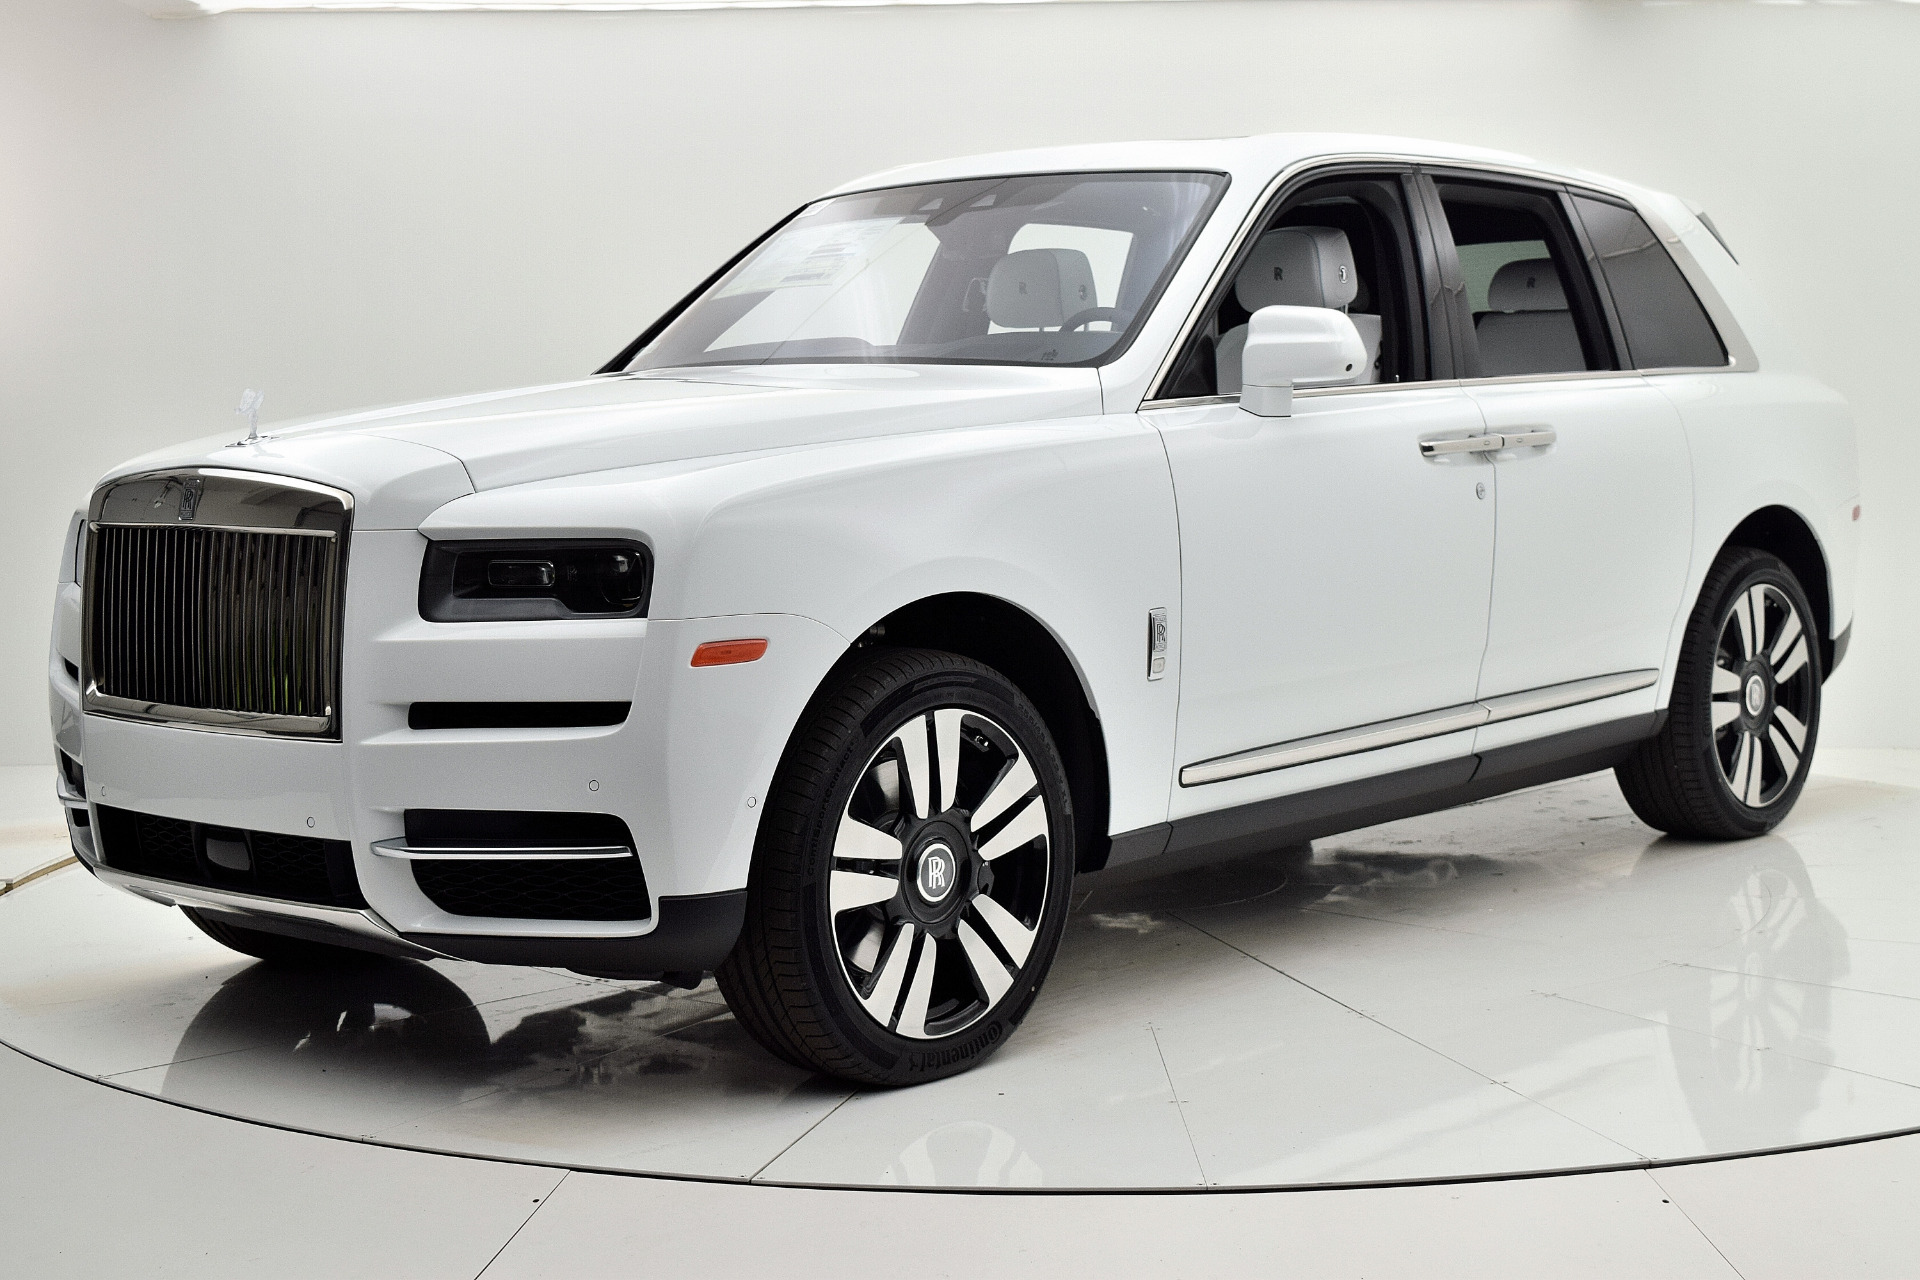 Used 2019 Rolls-Royce Cullinan for sale $349,880 at F.C. Kerbeck Aston Martin in Palmyra NJ 08065 2